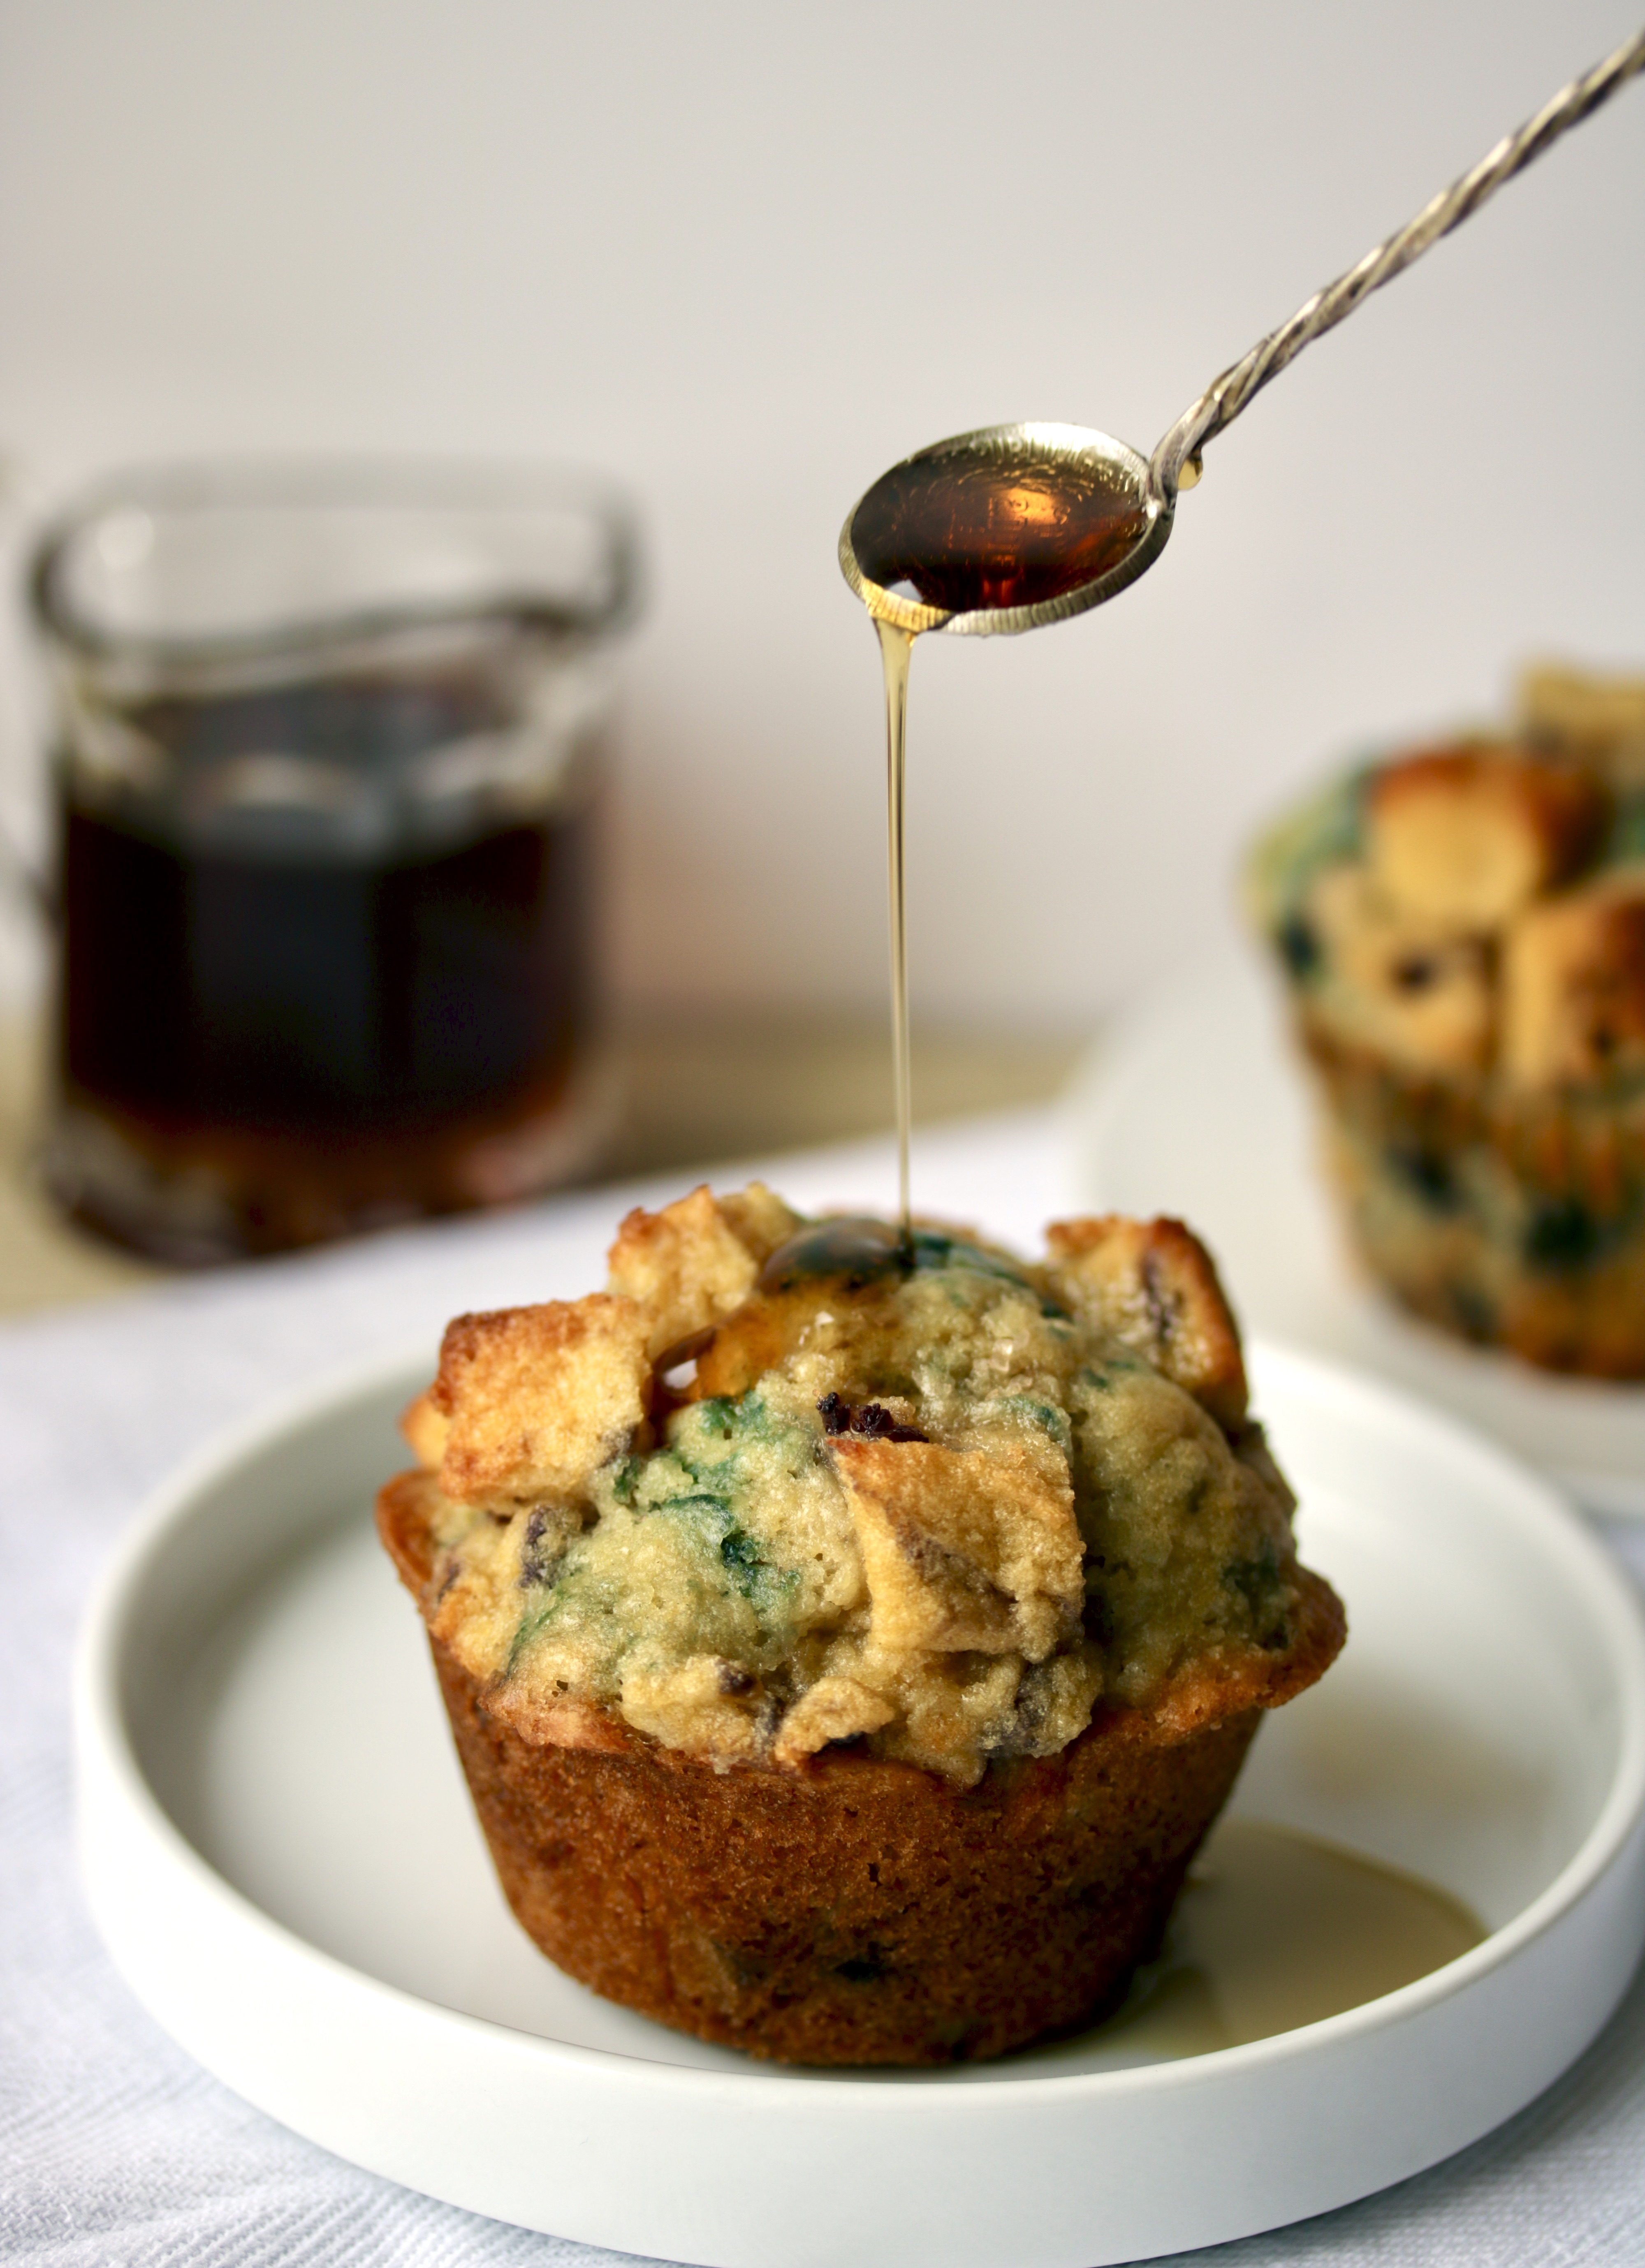 syrup drizzle on plated muffin